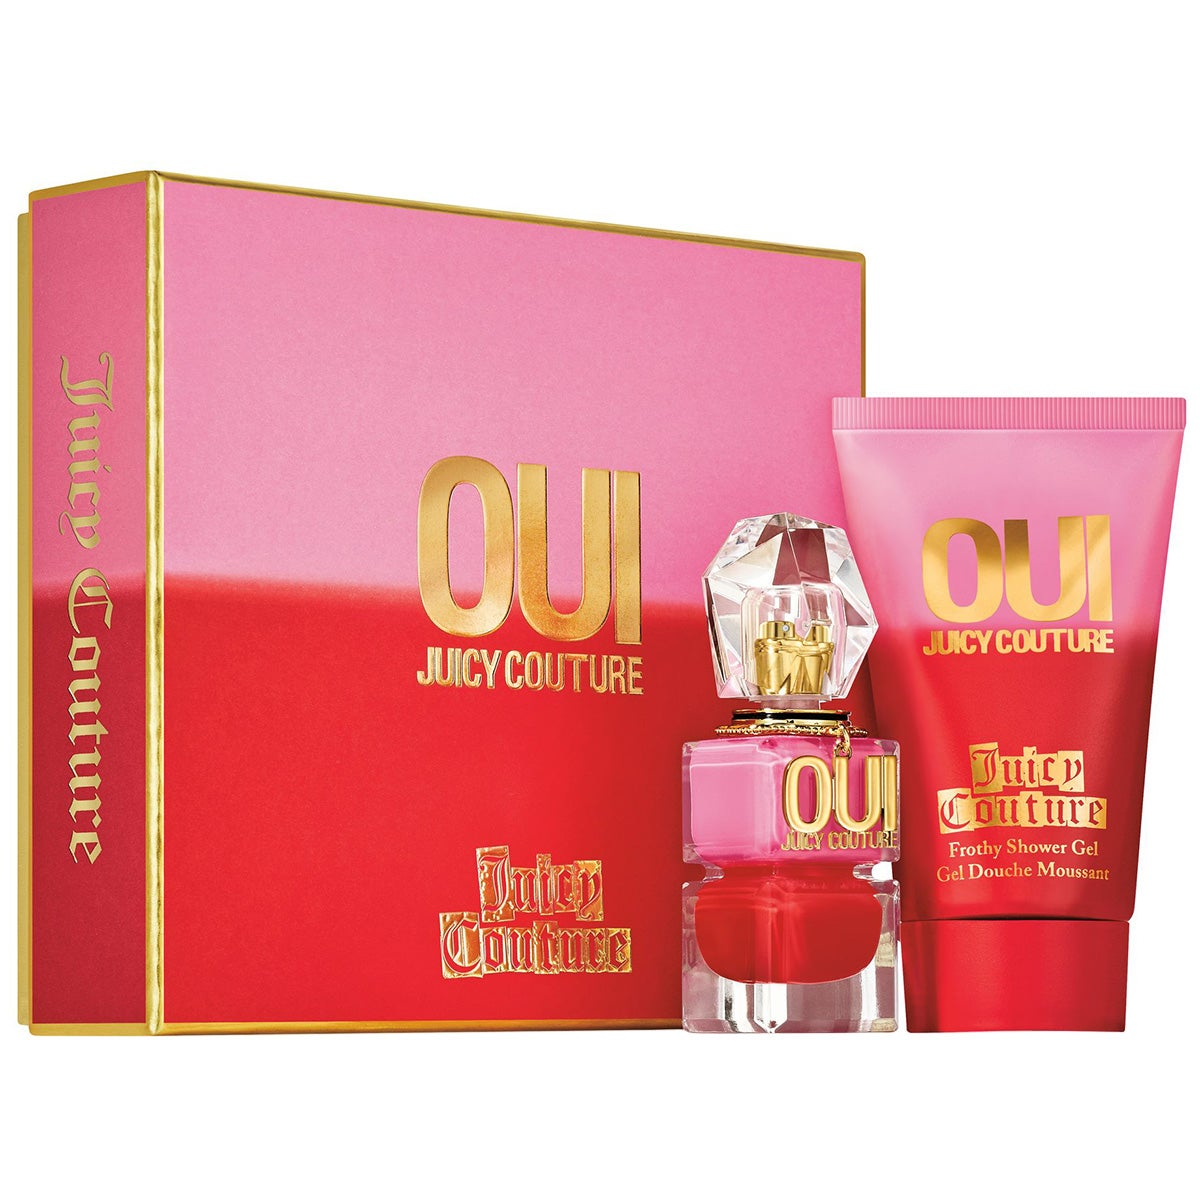 Juicy Couture Oui  Gift Set 2018